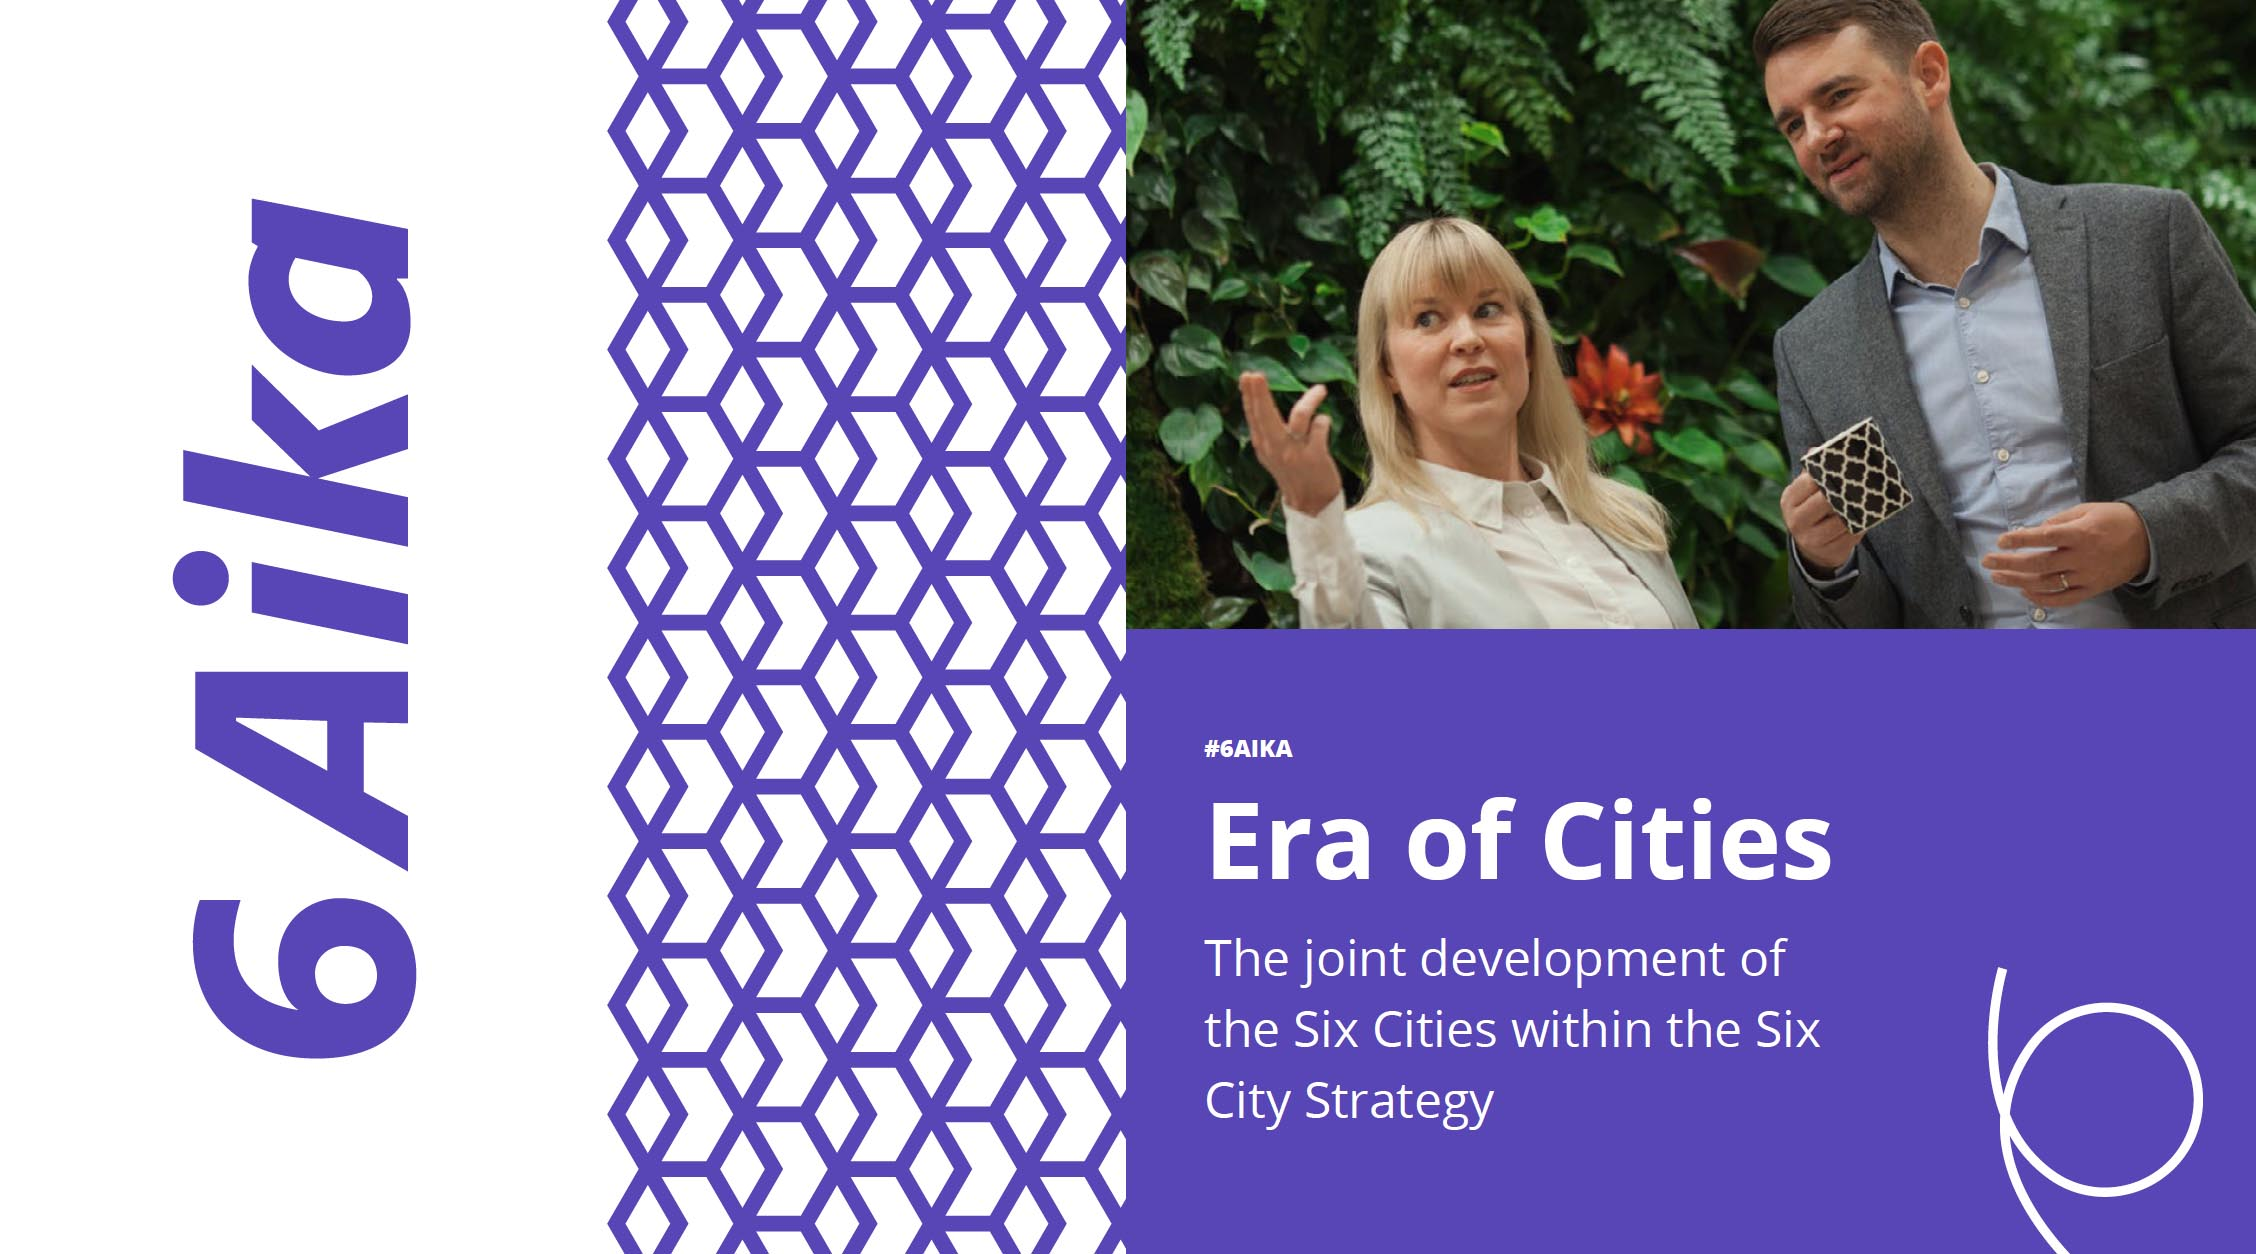 Cover for article 'Out now: Era of Cities publication'